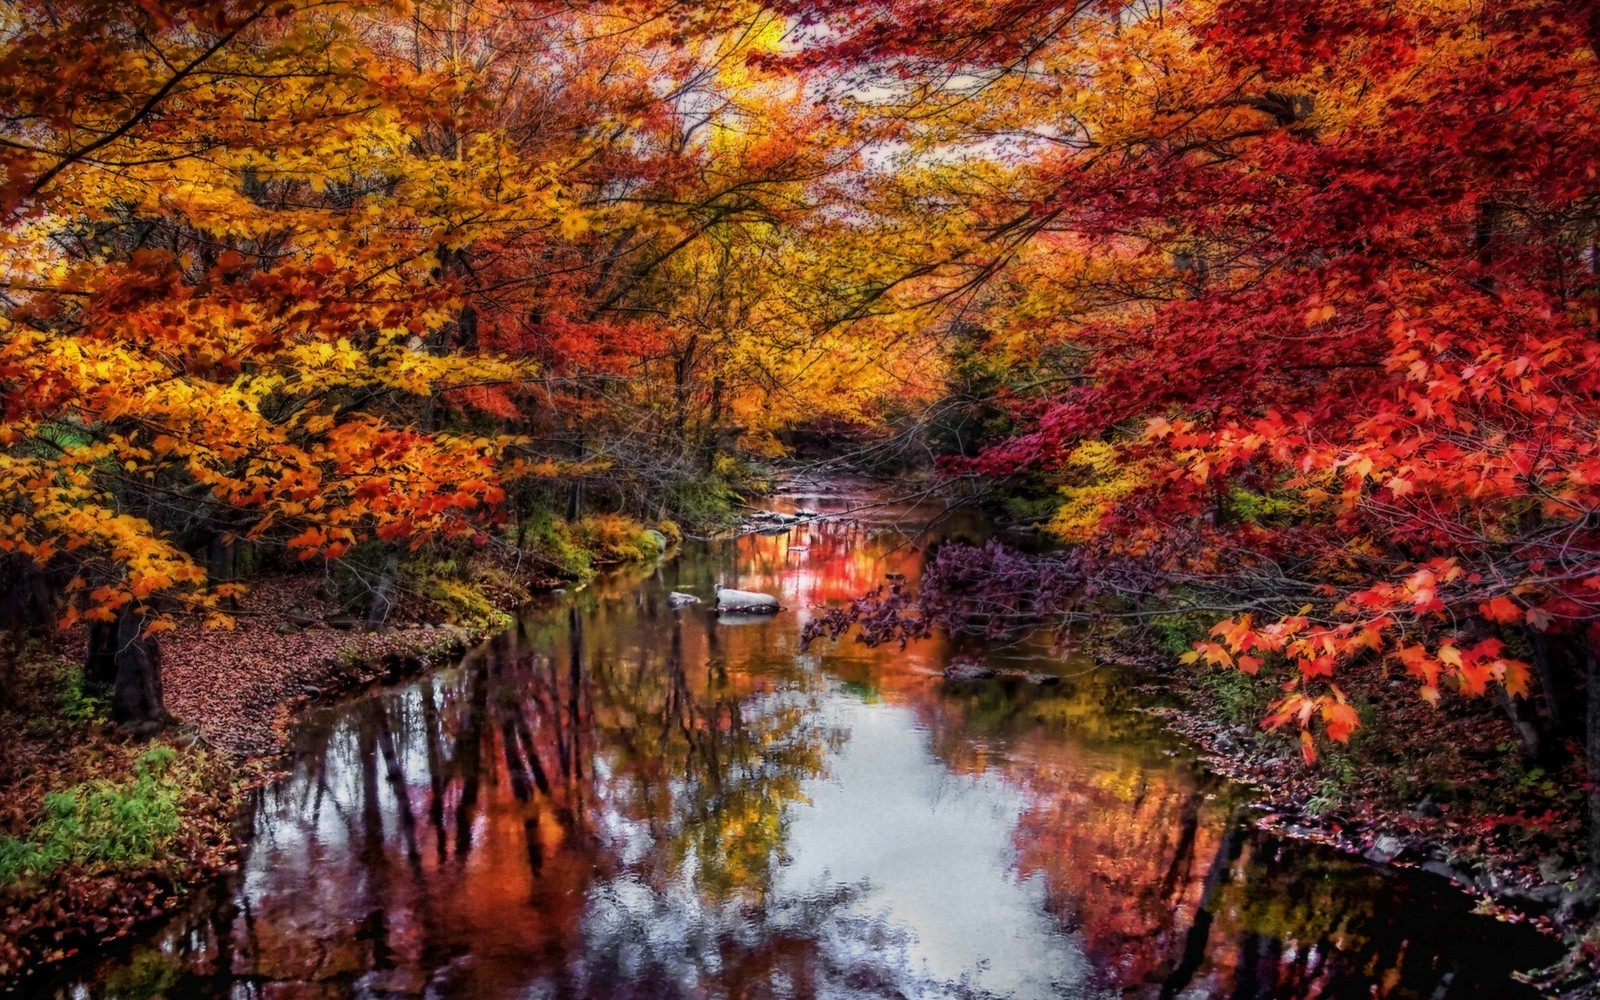 New England Fall Themed Wallpaper Nature Landscape River Leaves Colorful Trees Fall